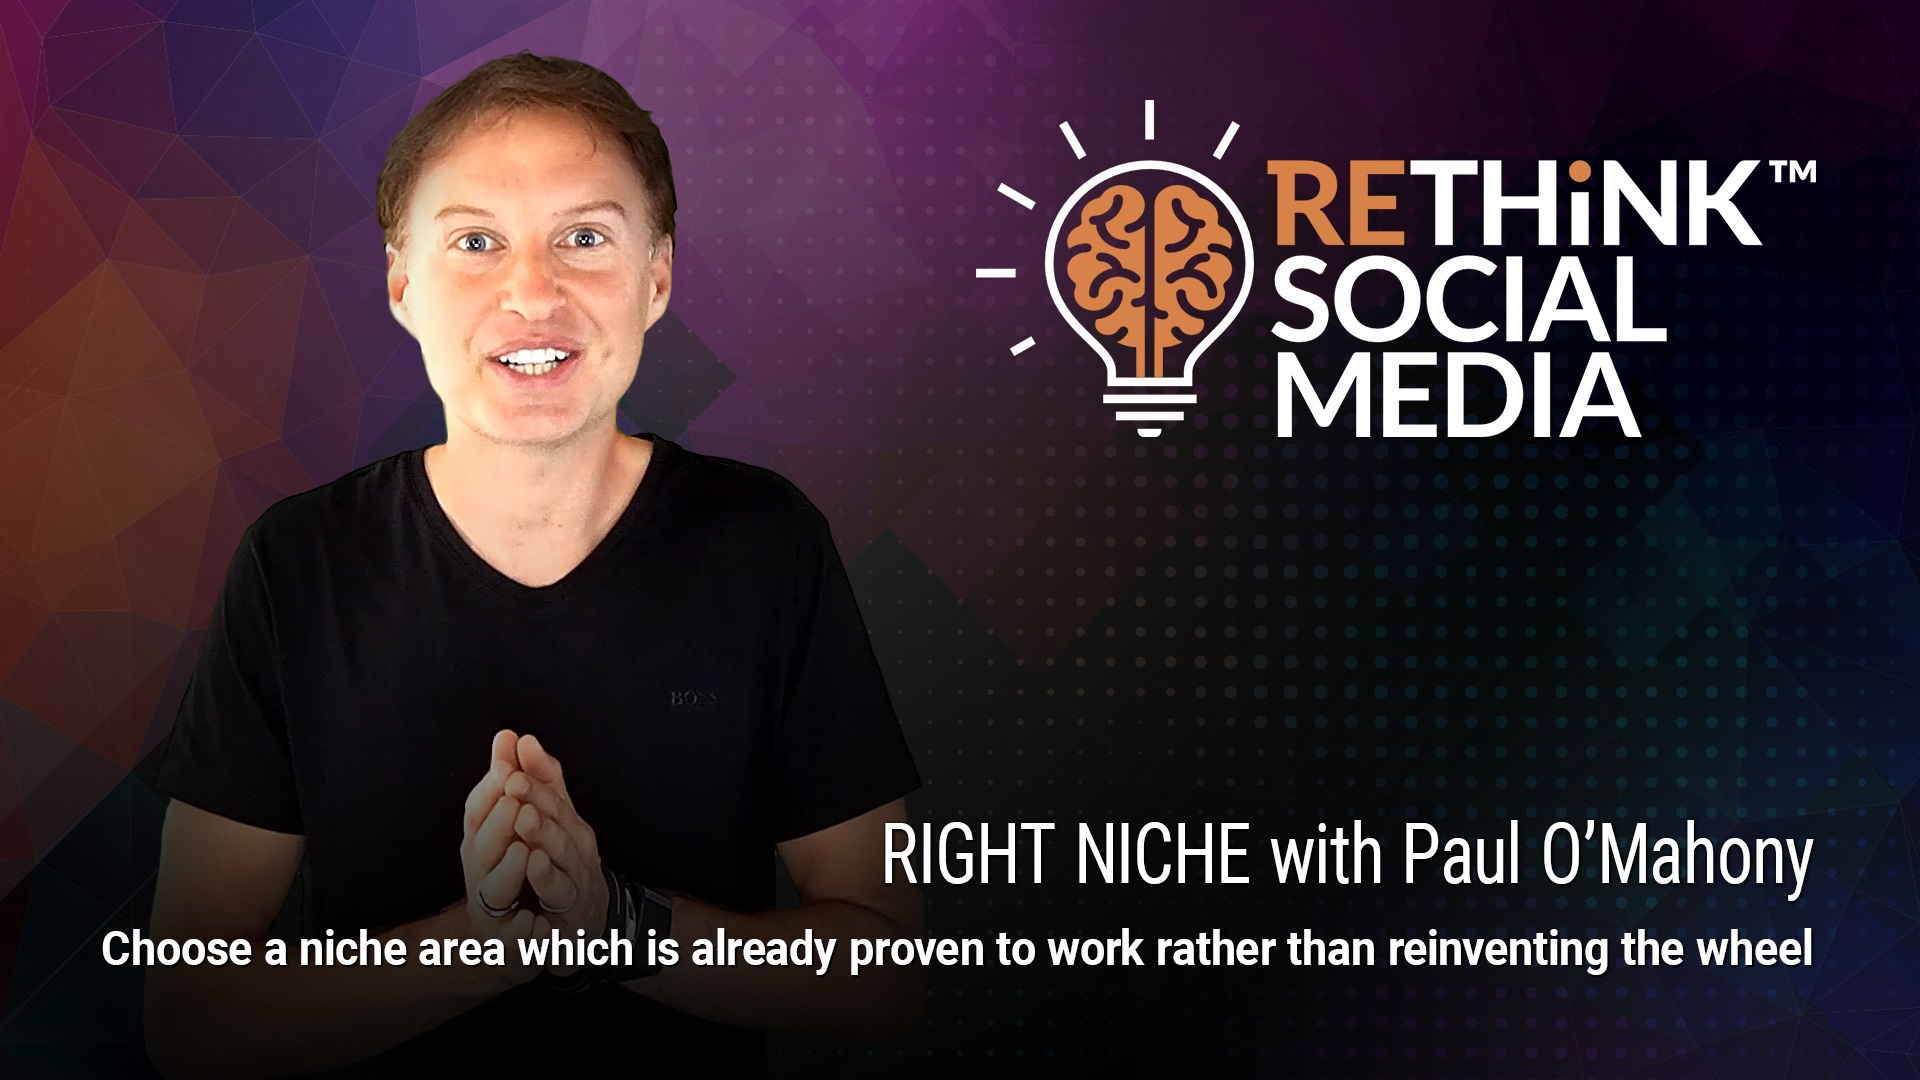 Episode 2 - Right Niche with Paul O'Mahony